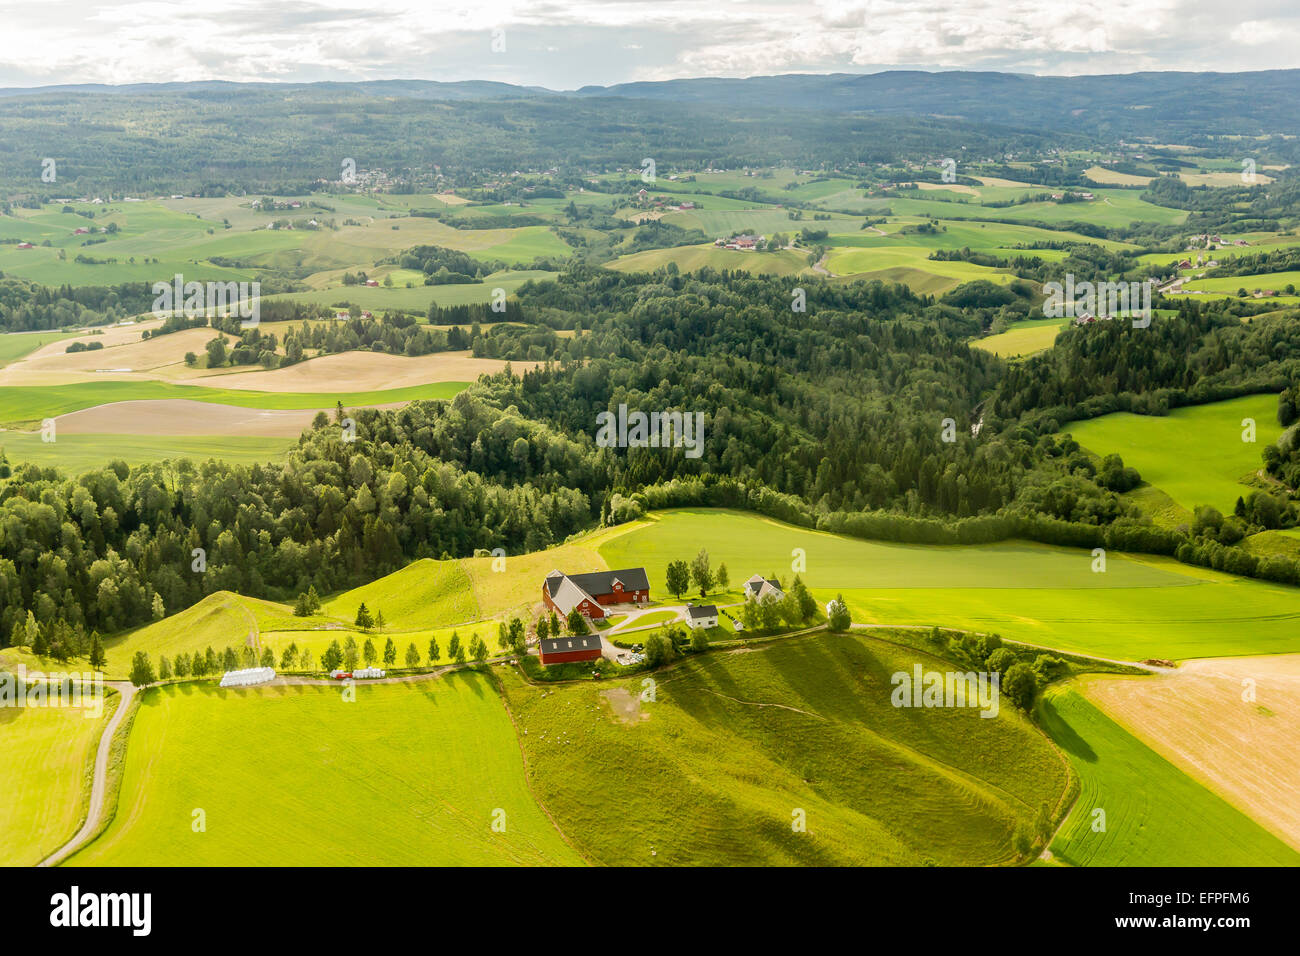 Aerial view of farmland surrounding Oslo taken on a commercial flight to Oslo, Norway, Scandinavia, Europe - Stock Image